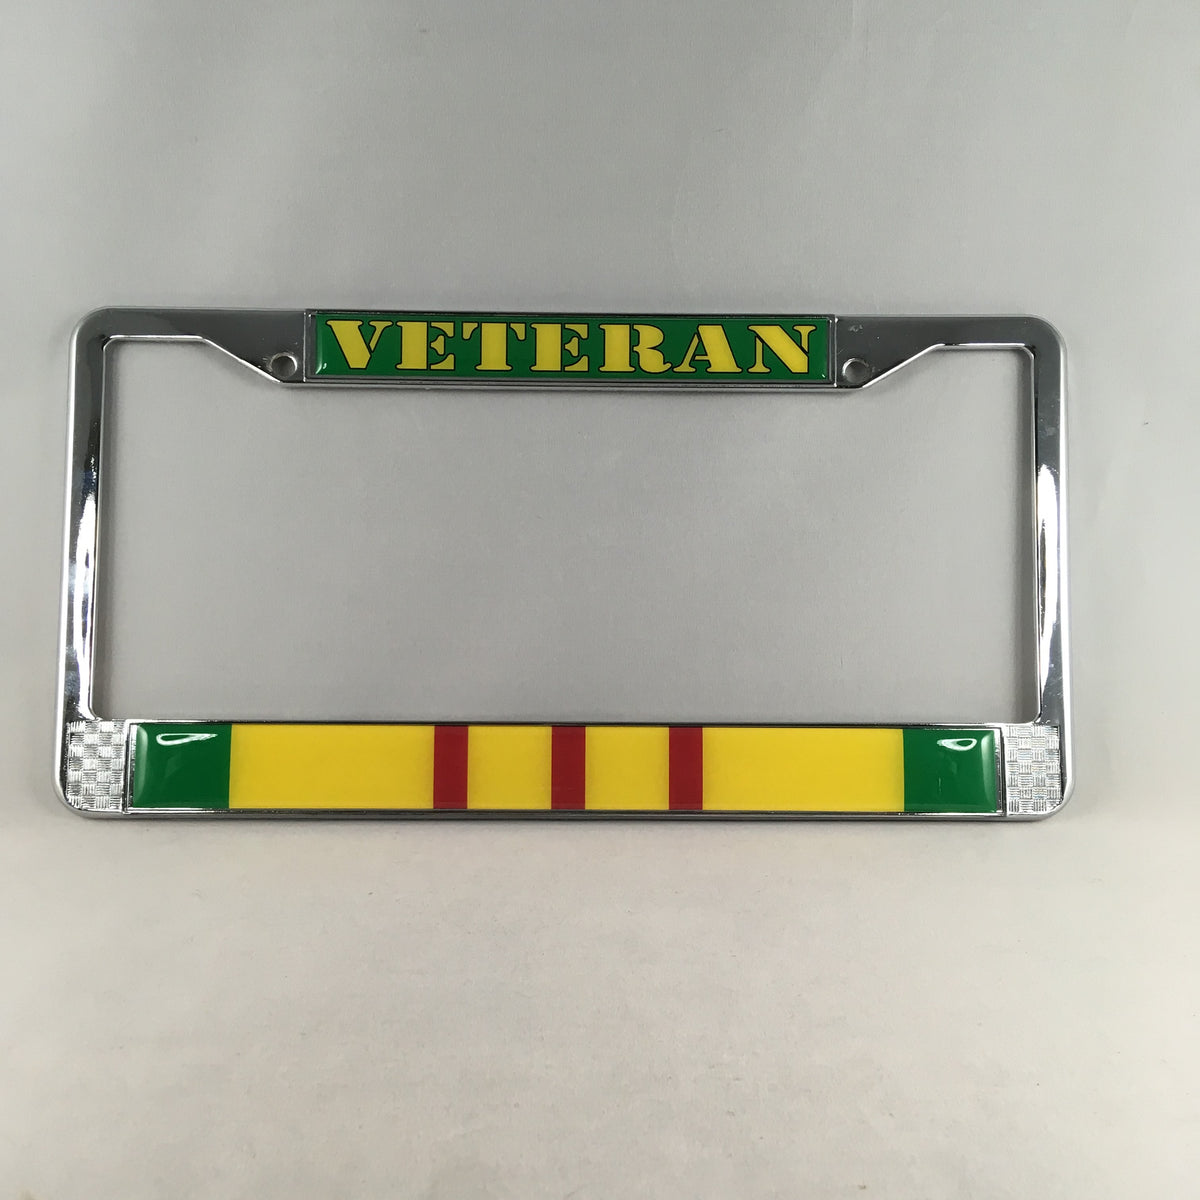 Vietnam Veteran License Plate Holder